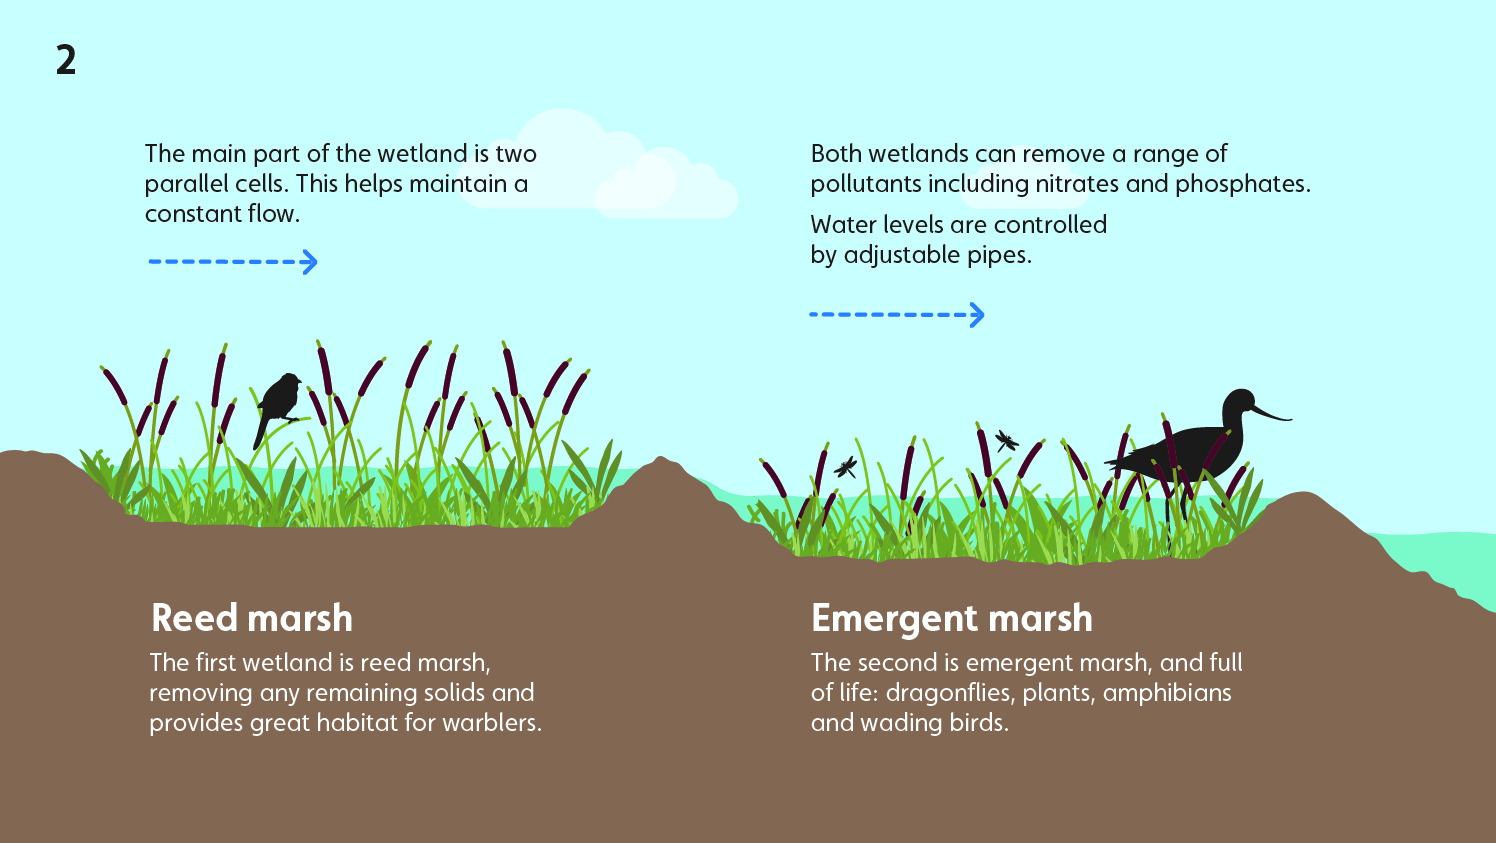 Wetland water treatment system - part 2 - reed marsh and emergent marsh